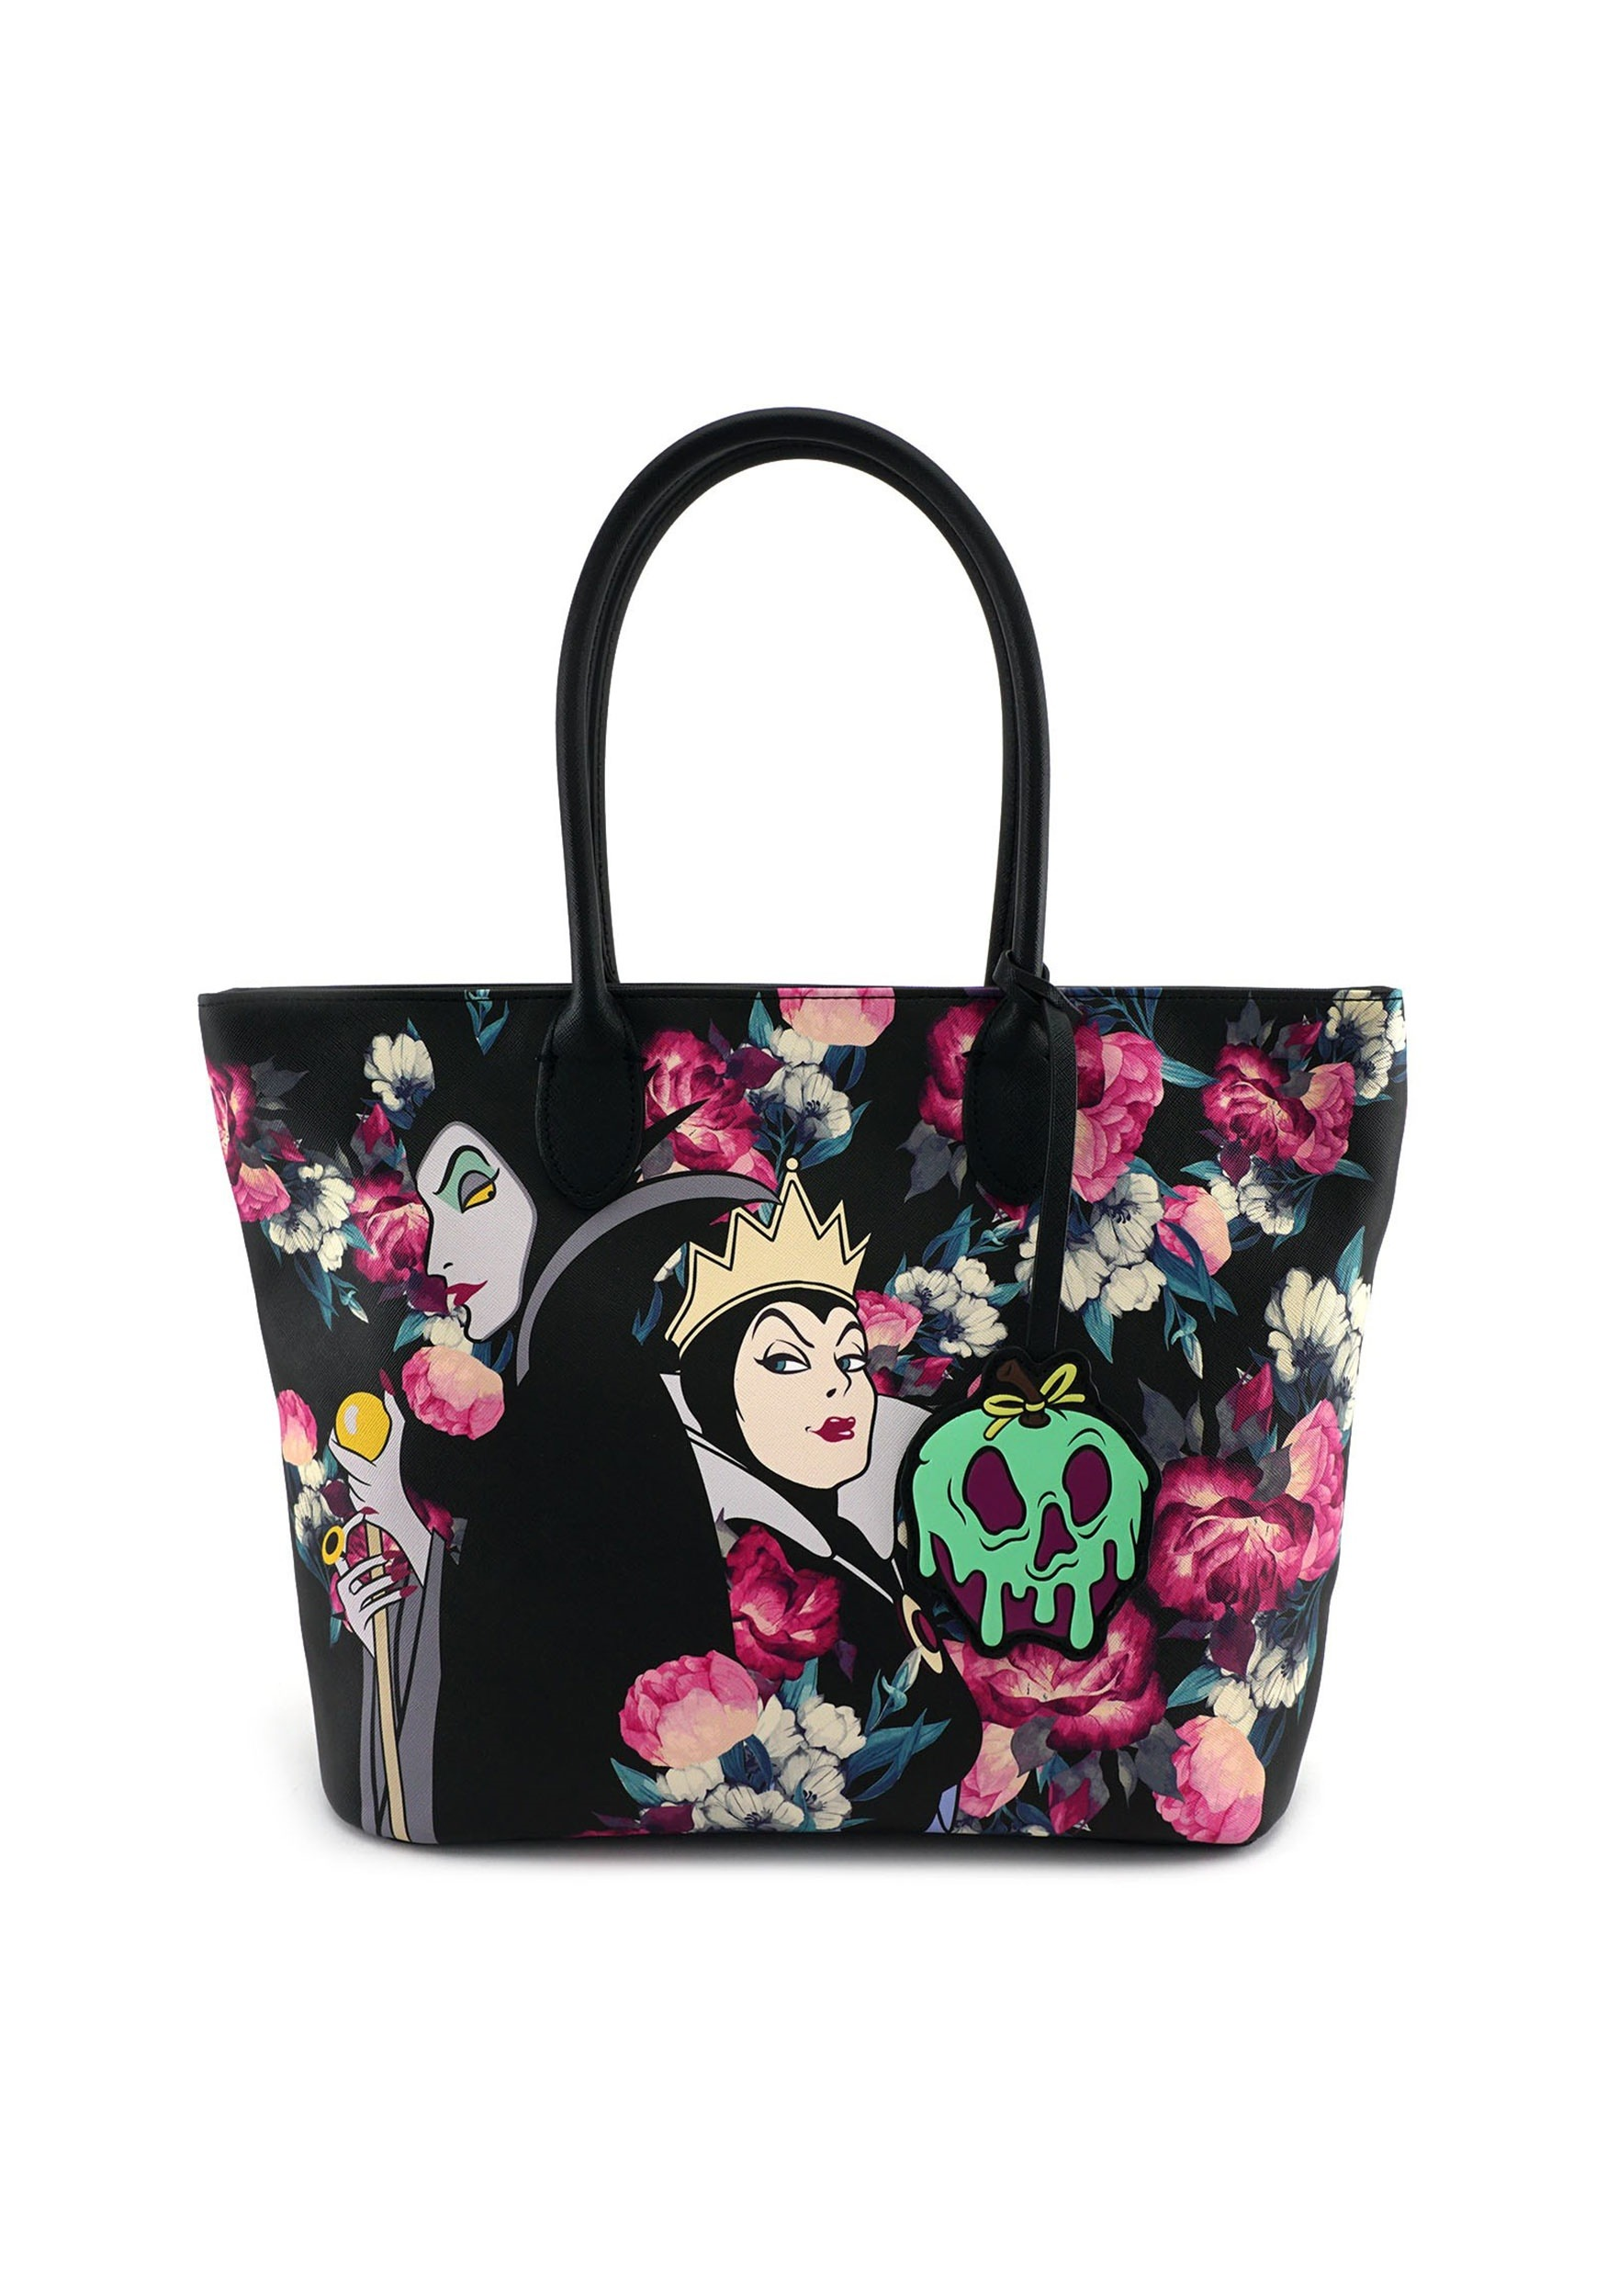 96bc30c1ad9 Women s Disney Villains Floral Faux Leather Tote by Loungefly